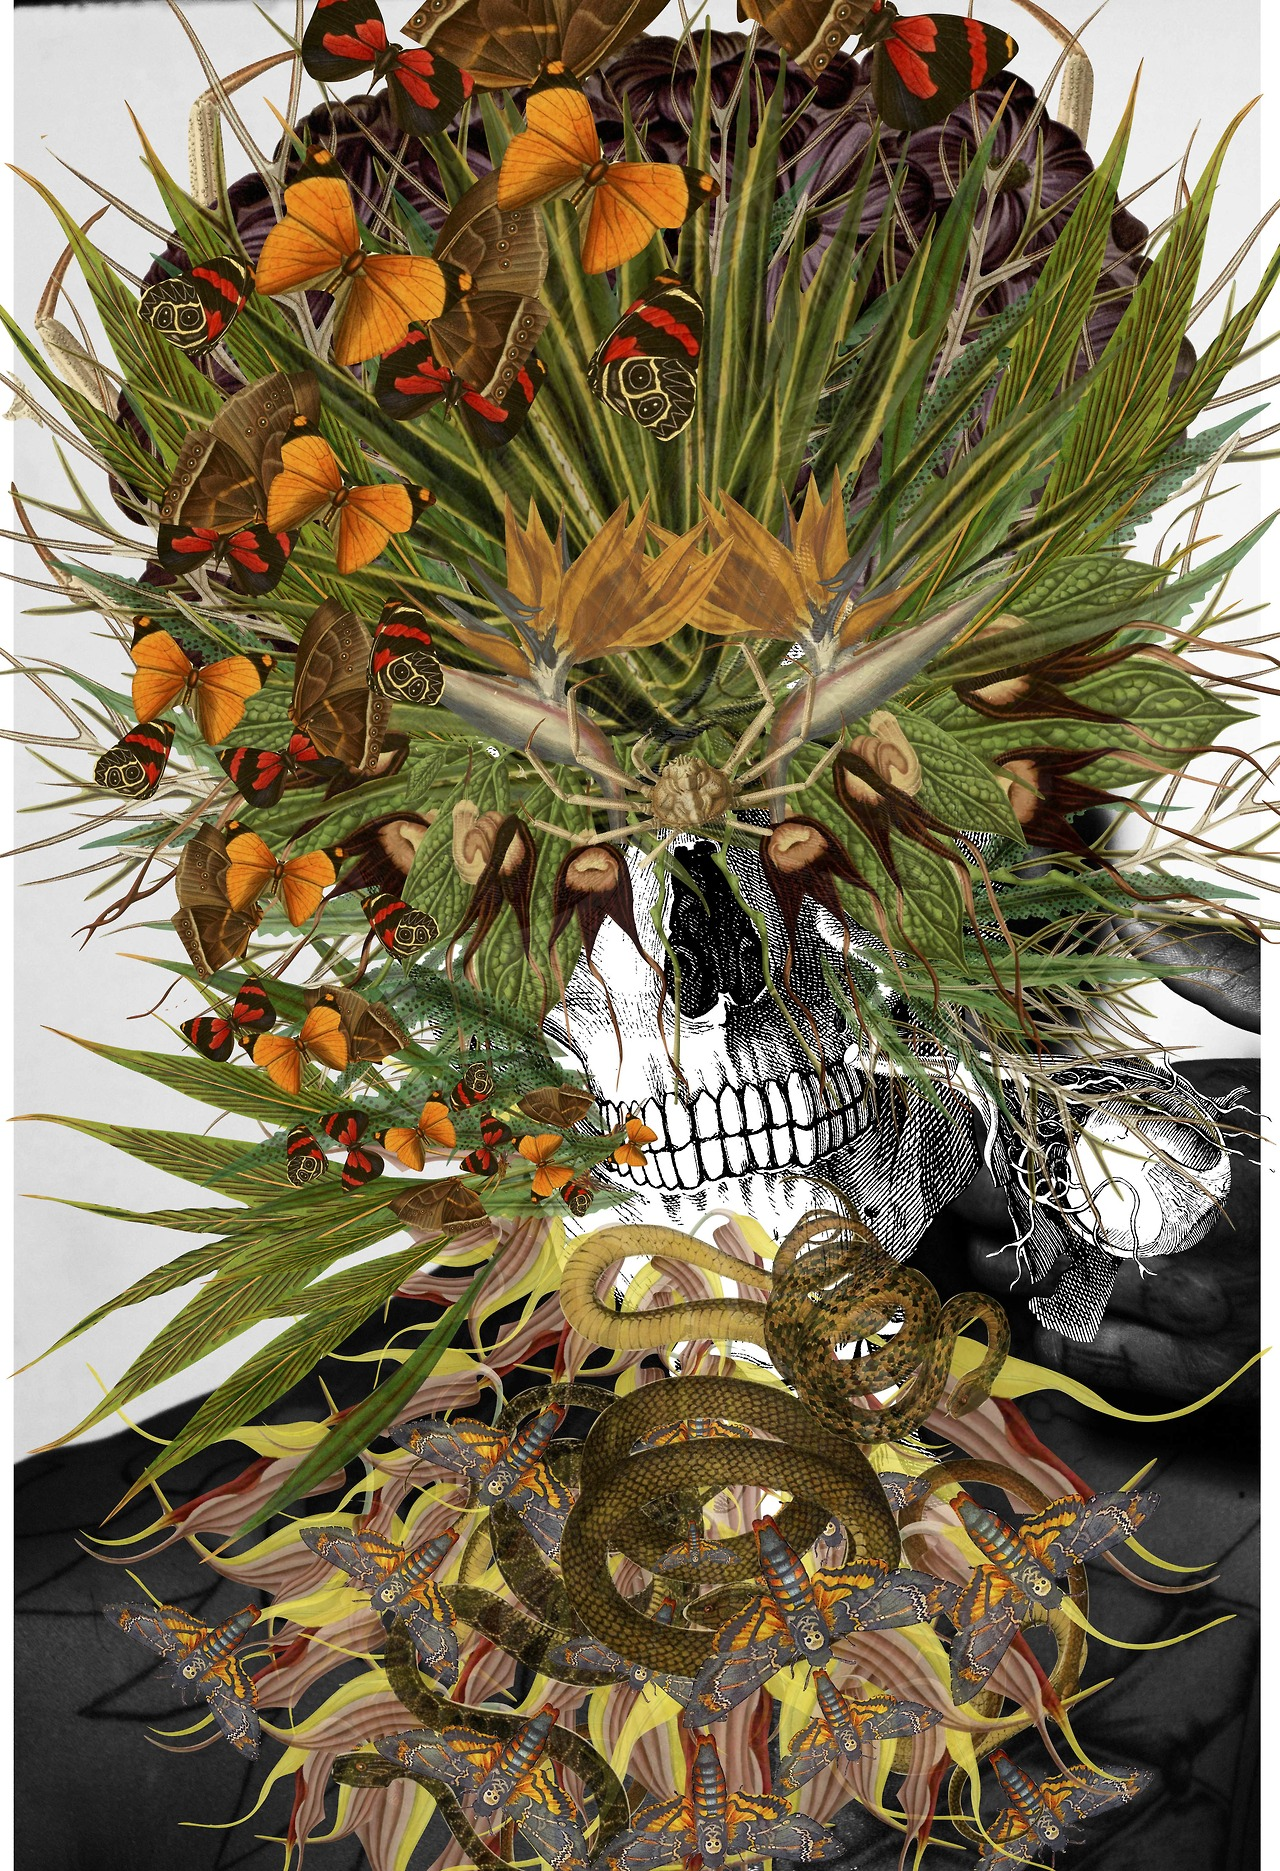 collage Bedelgeuse art calavera serpientes y flores